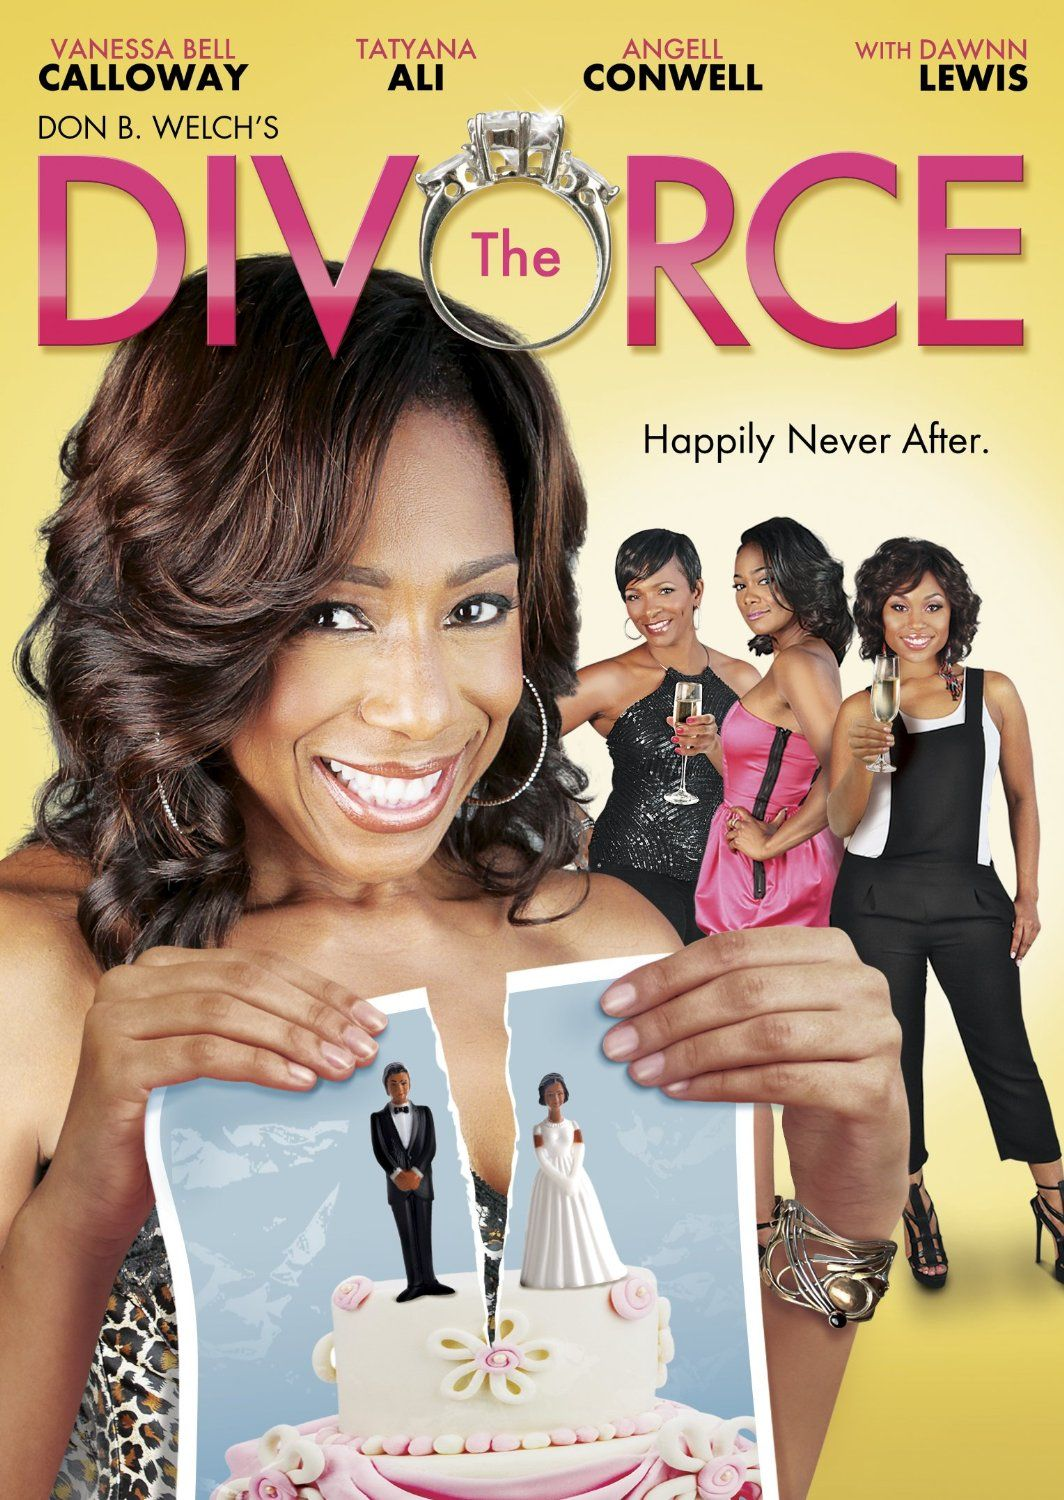 Interracial divorce party one the